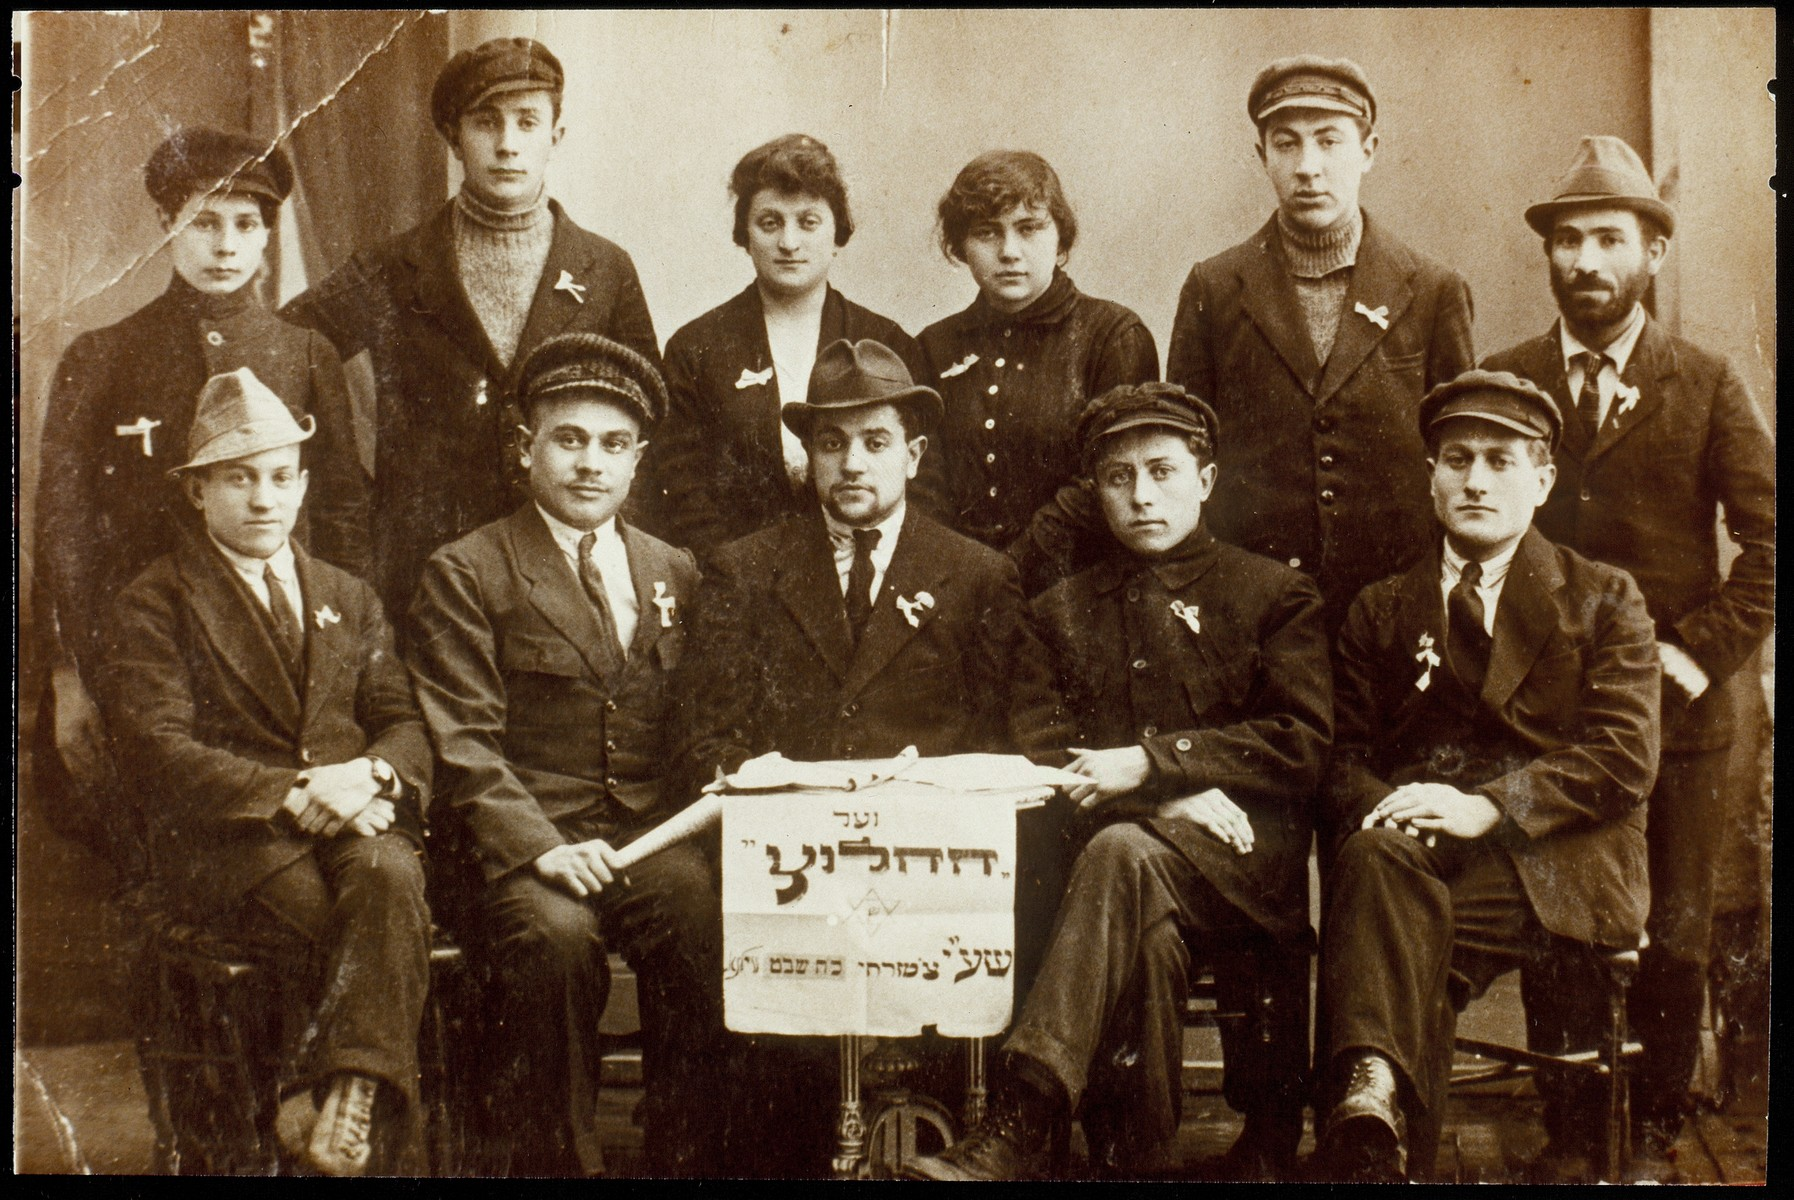 Leadership of Hehalutz Hamizrachi in the Vilna region.   Rabbi Yitzhak Munin is seated second from the left.  Seated at the far right is Nahum Radunski from Eisiskes, who along with Rabbi Munin established Hehalutz Hamizrachi in the Vilna region.